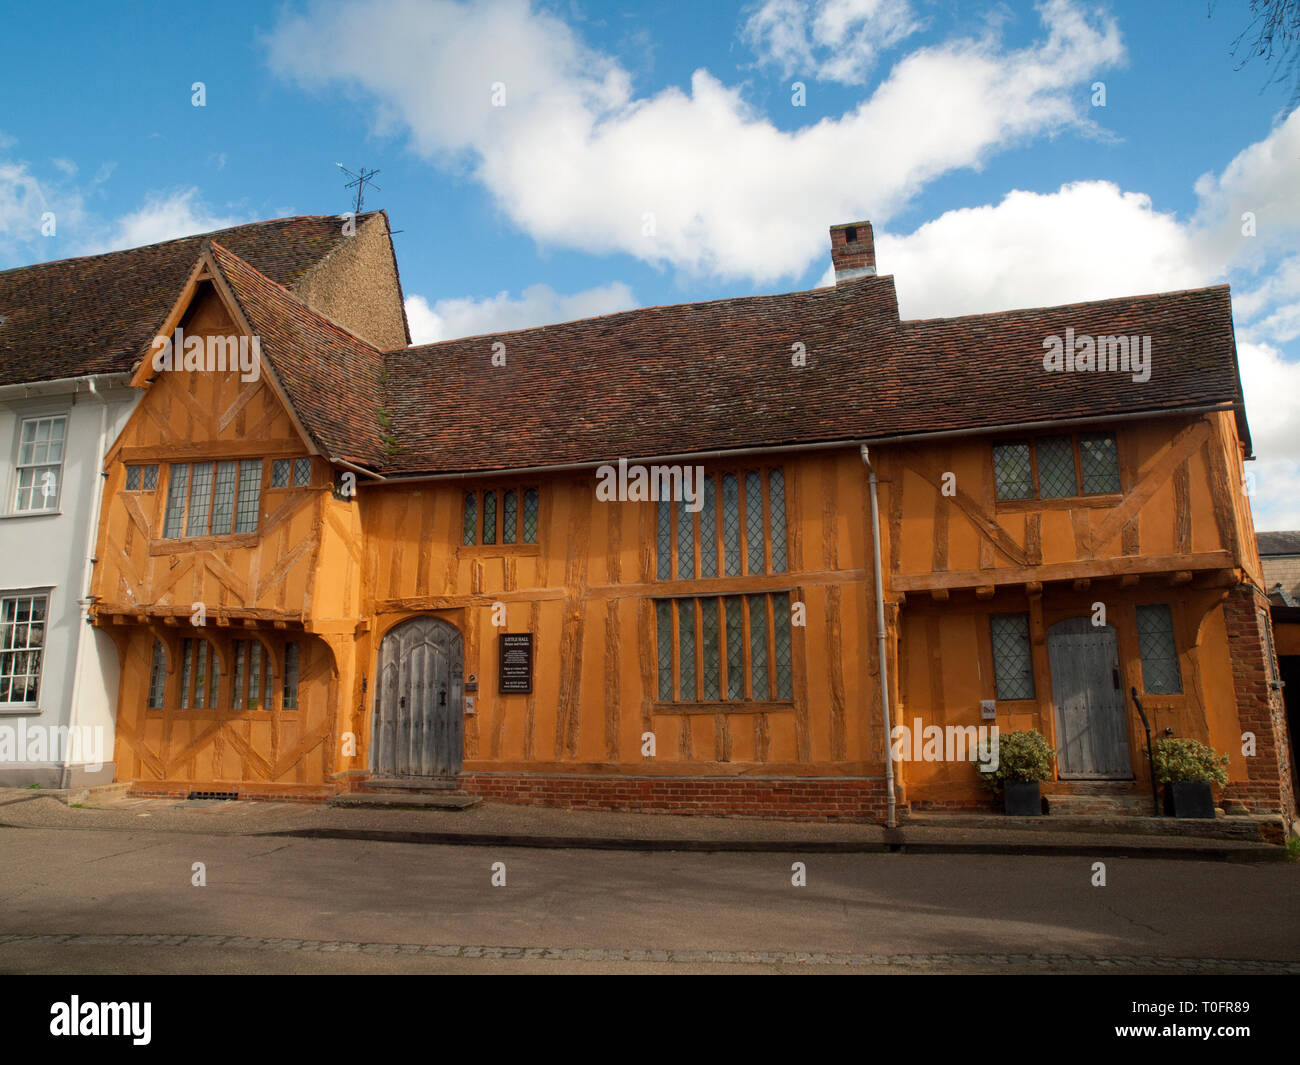 Little Hall, house and garden, in the medieval wool town of Lavenham in Suffolk - Stock Image